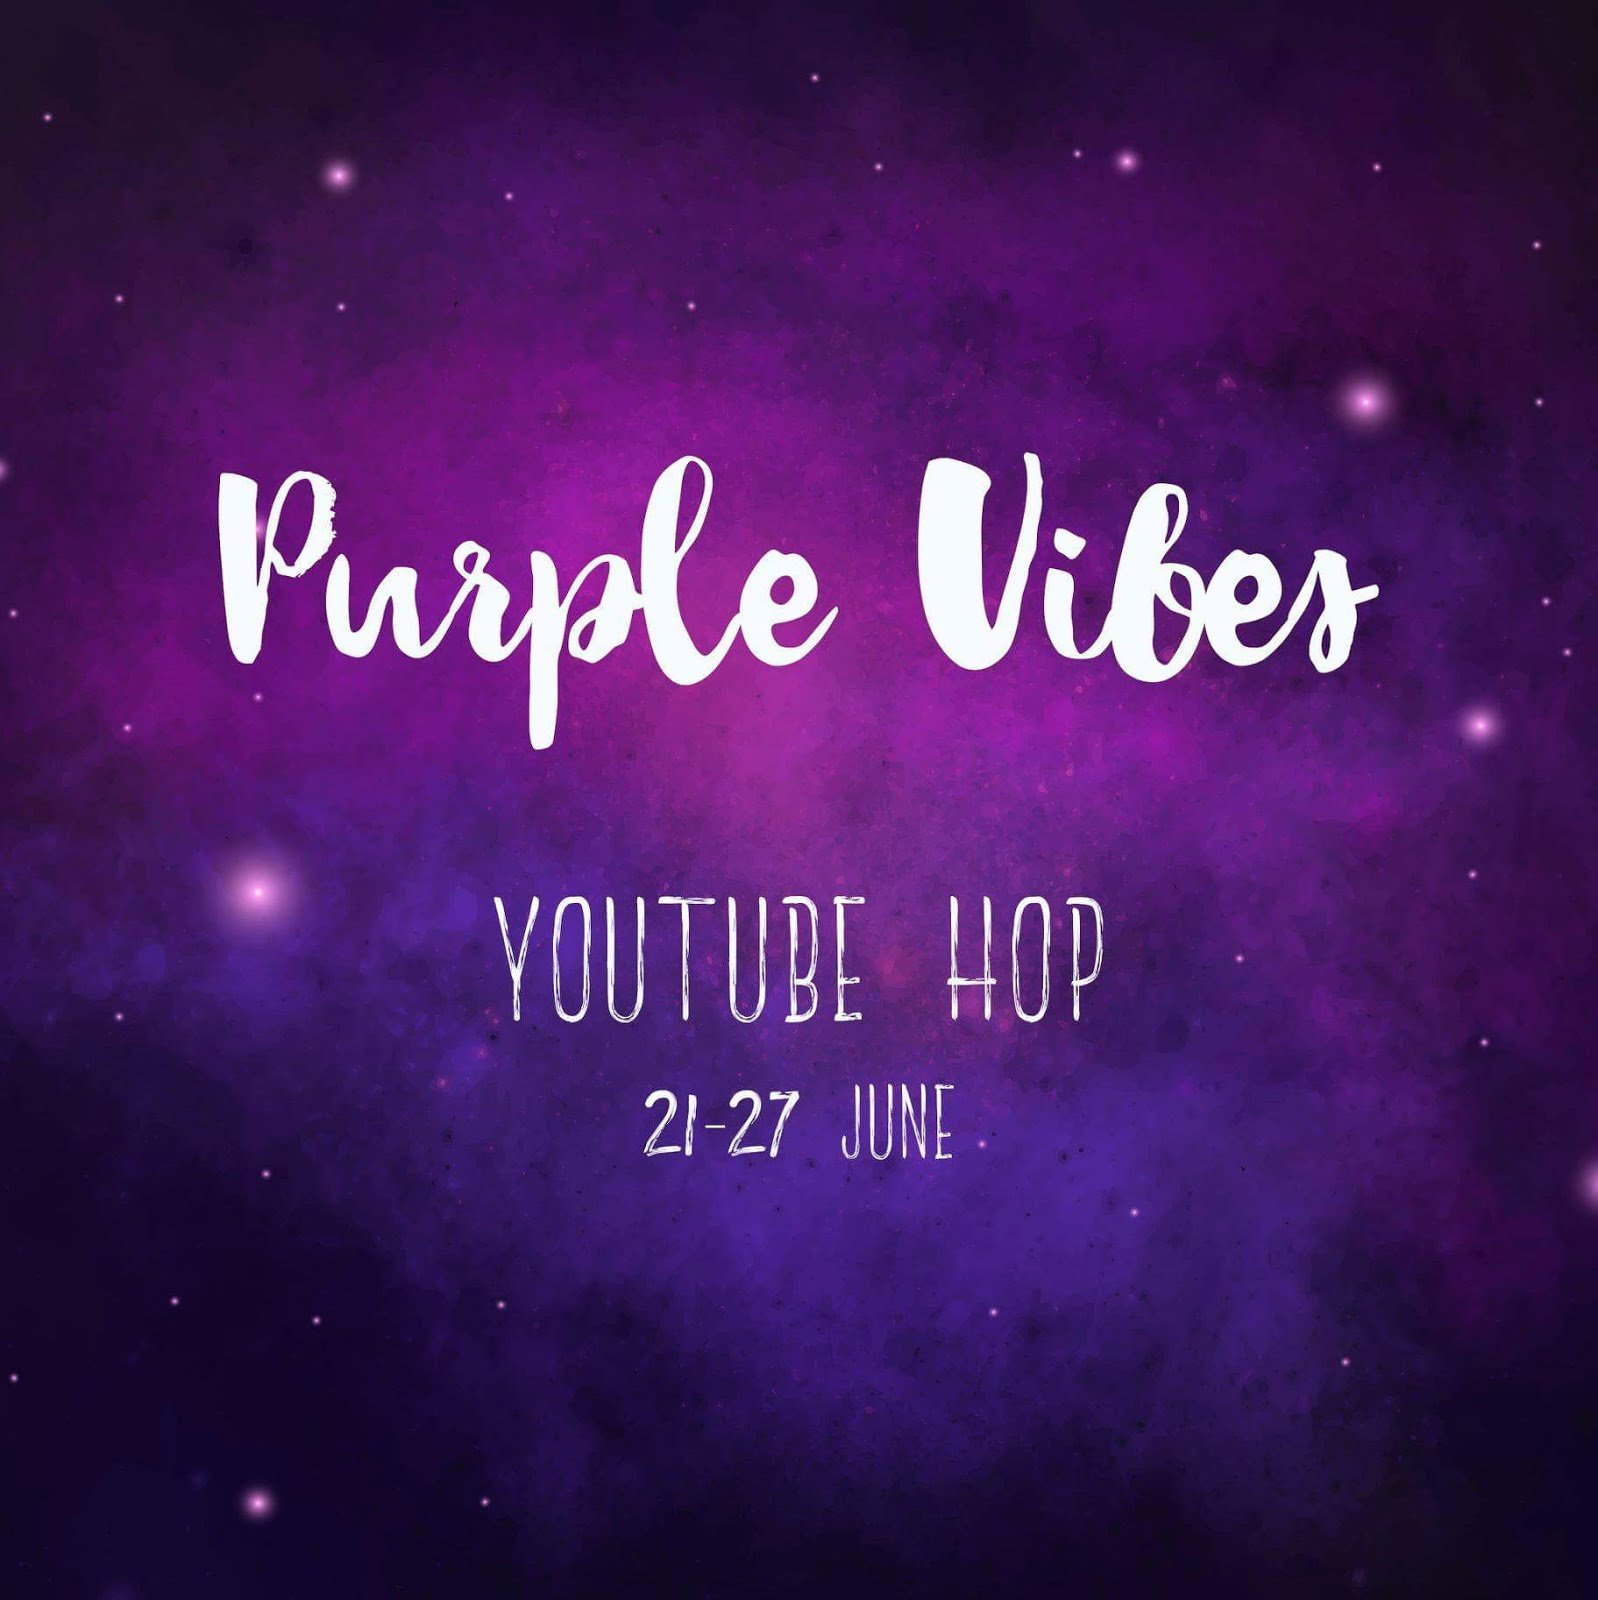 Enjoy Purple Vibes YouTube Hop